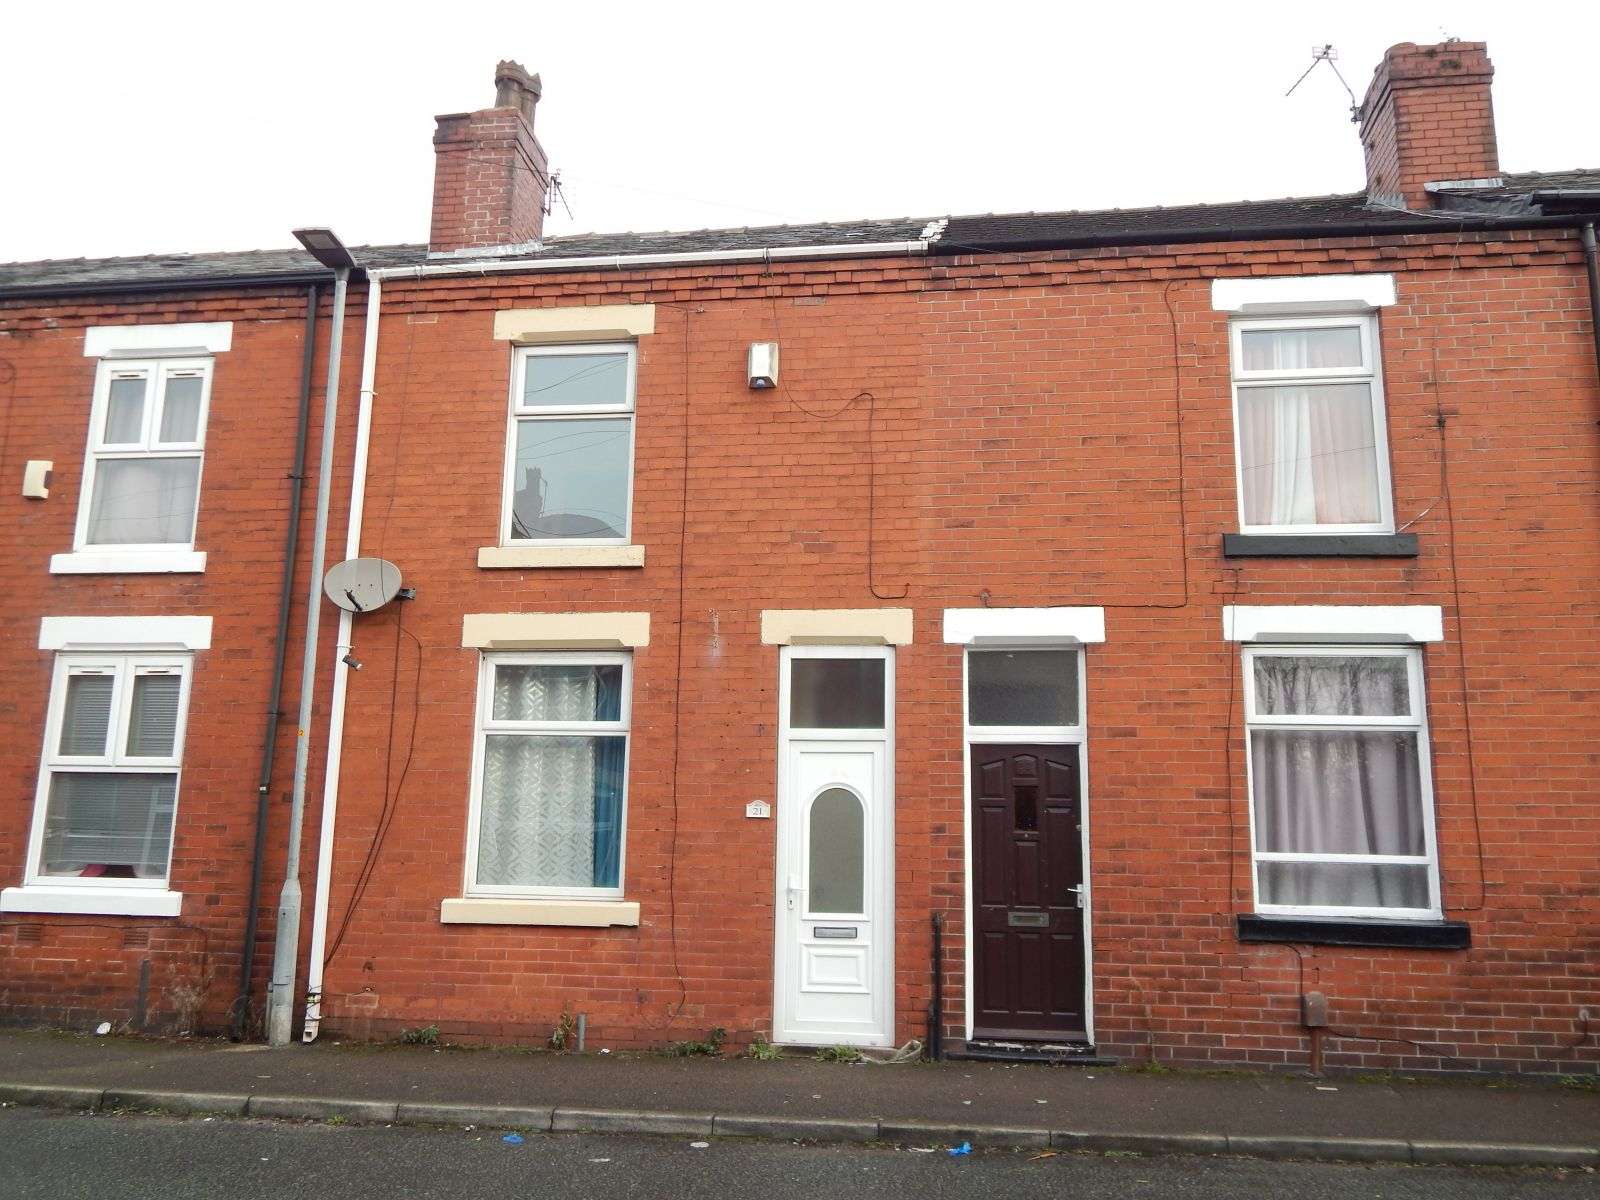 Property photo 1 of 8. Henry Park Street, Ince, Wigan